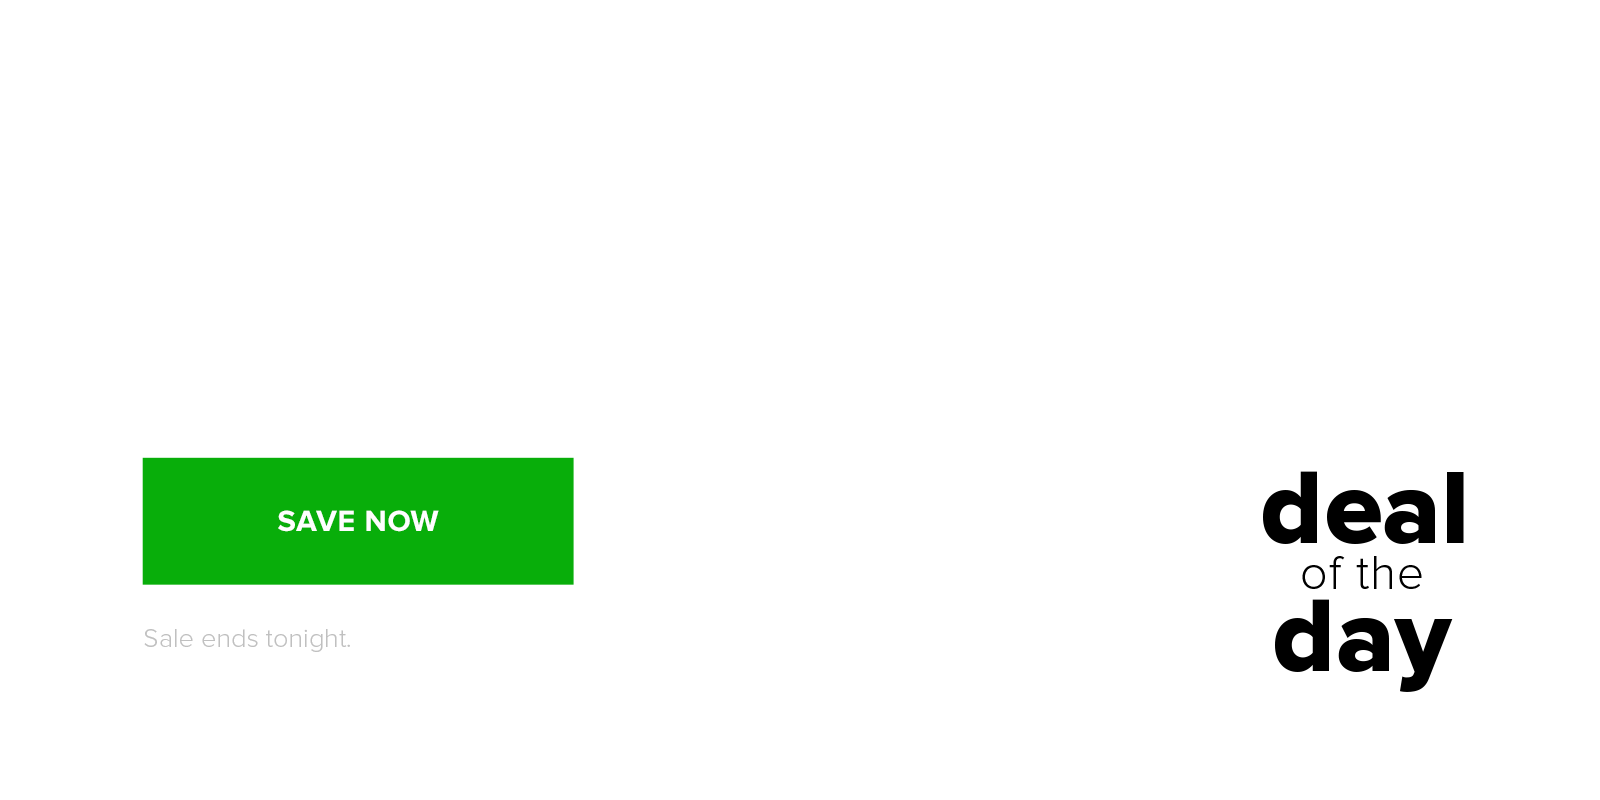 evolution meditation chair deal of the day